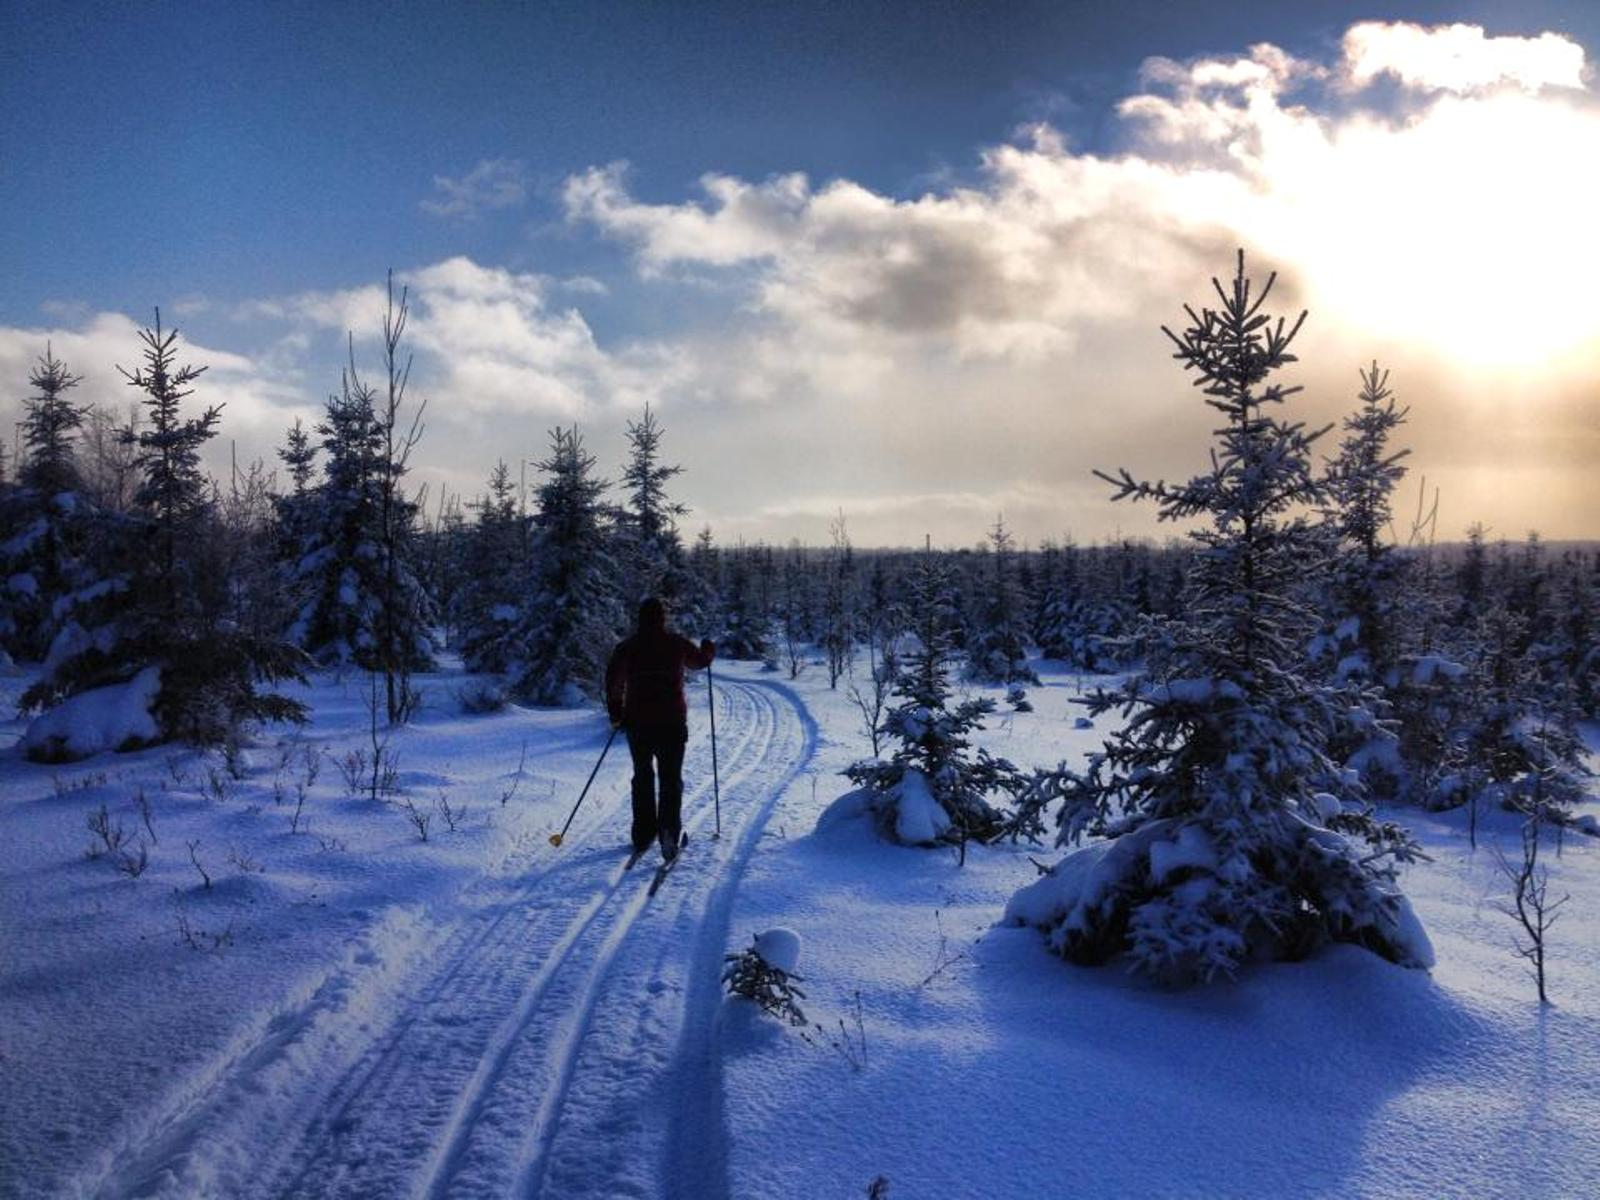 beaver valley nordic ski club – come and ski over 8 km of groomed